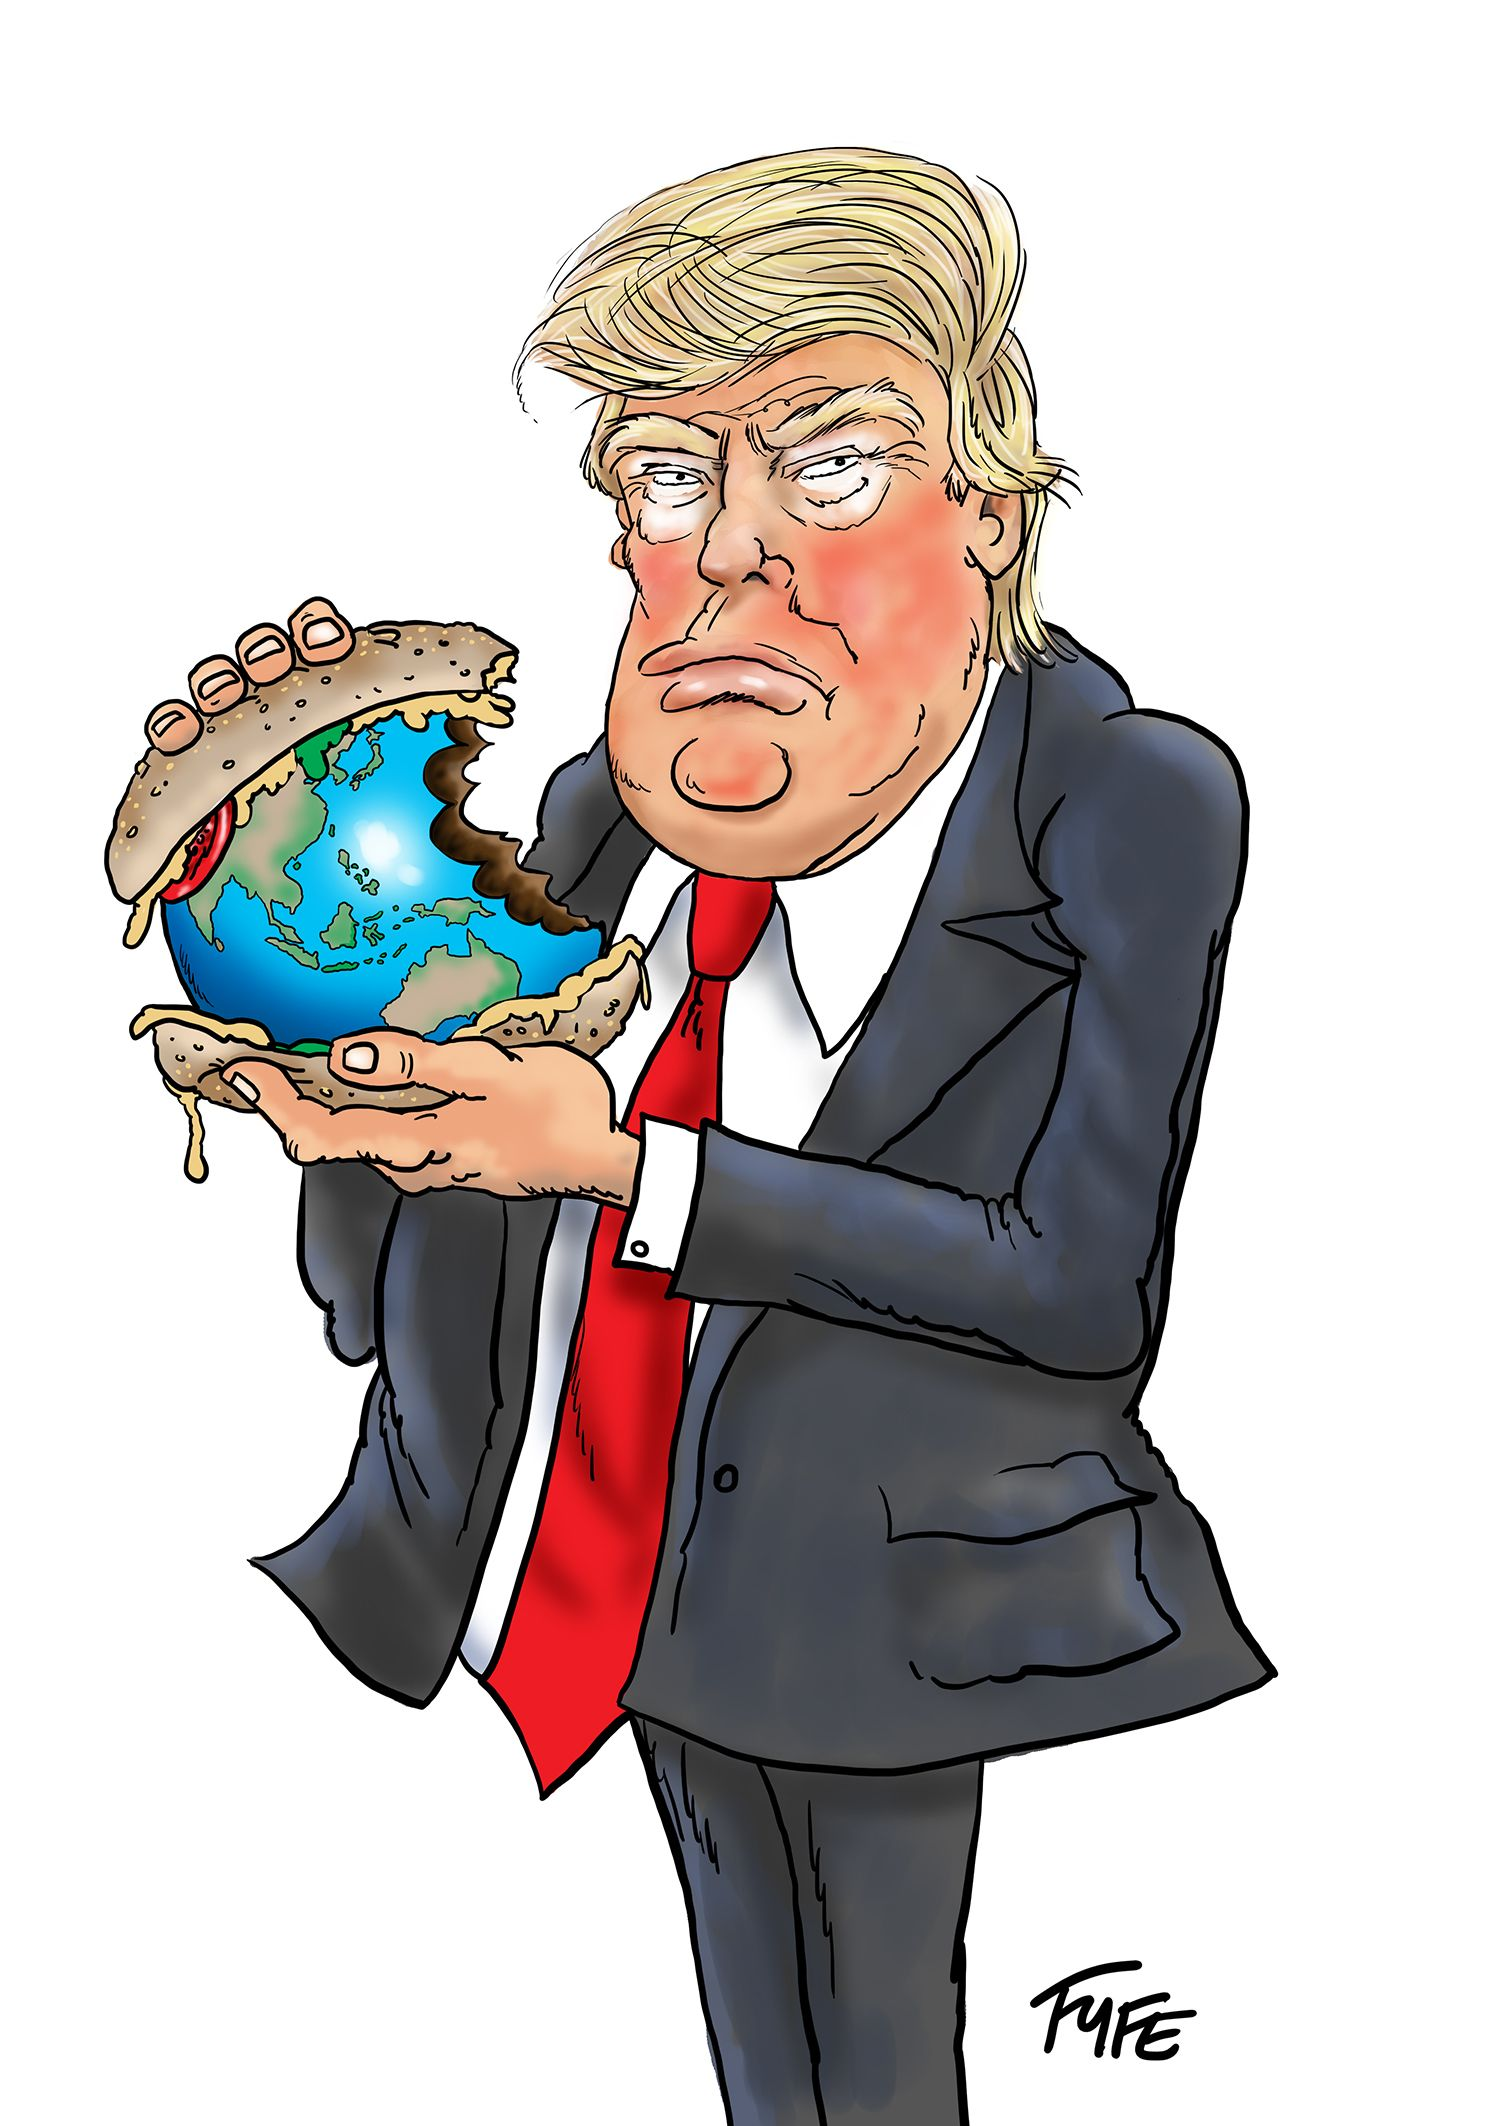 Image of: Political Donald Trump Caricature Trump Caricature Donald Trump Cartoon Trump Cartoon Shutterstock Donald Trump Caricature Trump Caricature Donald Trump Cartoon